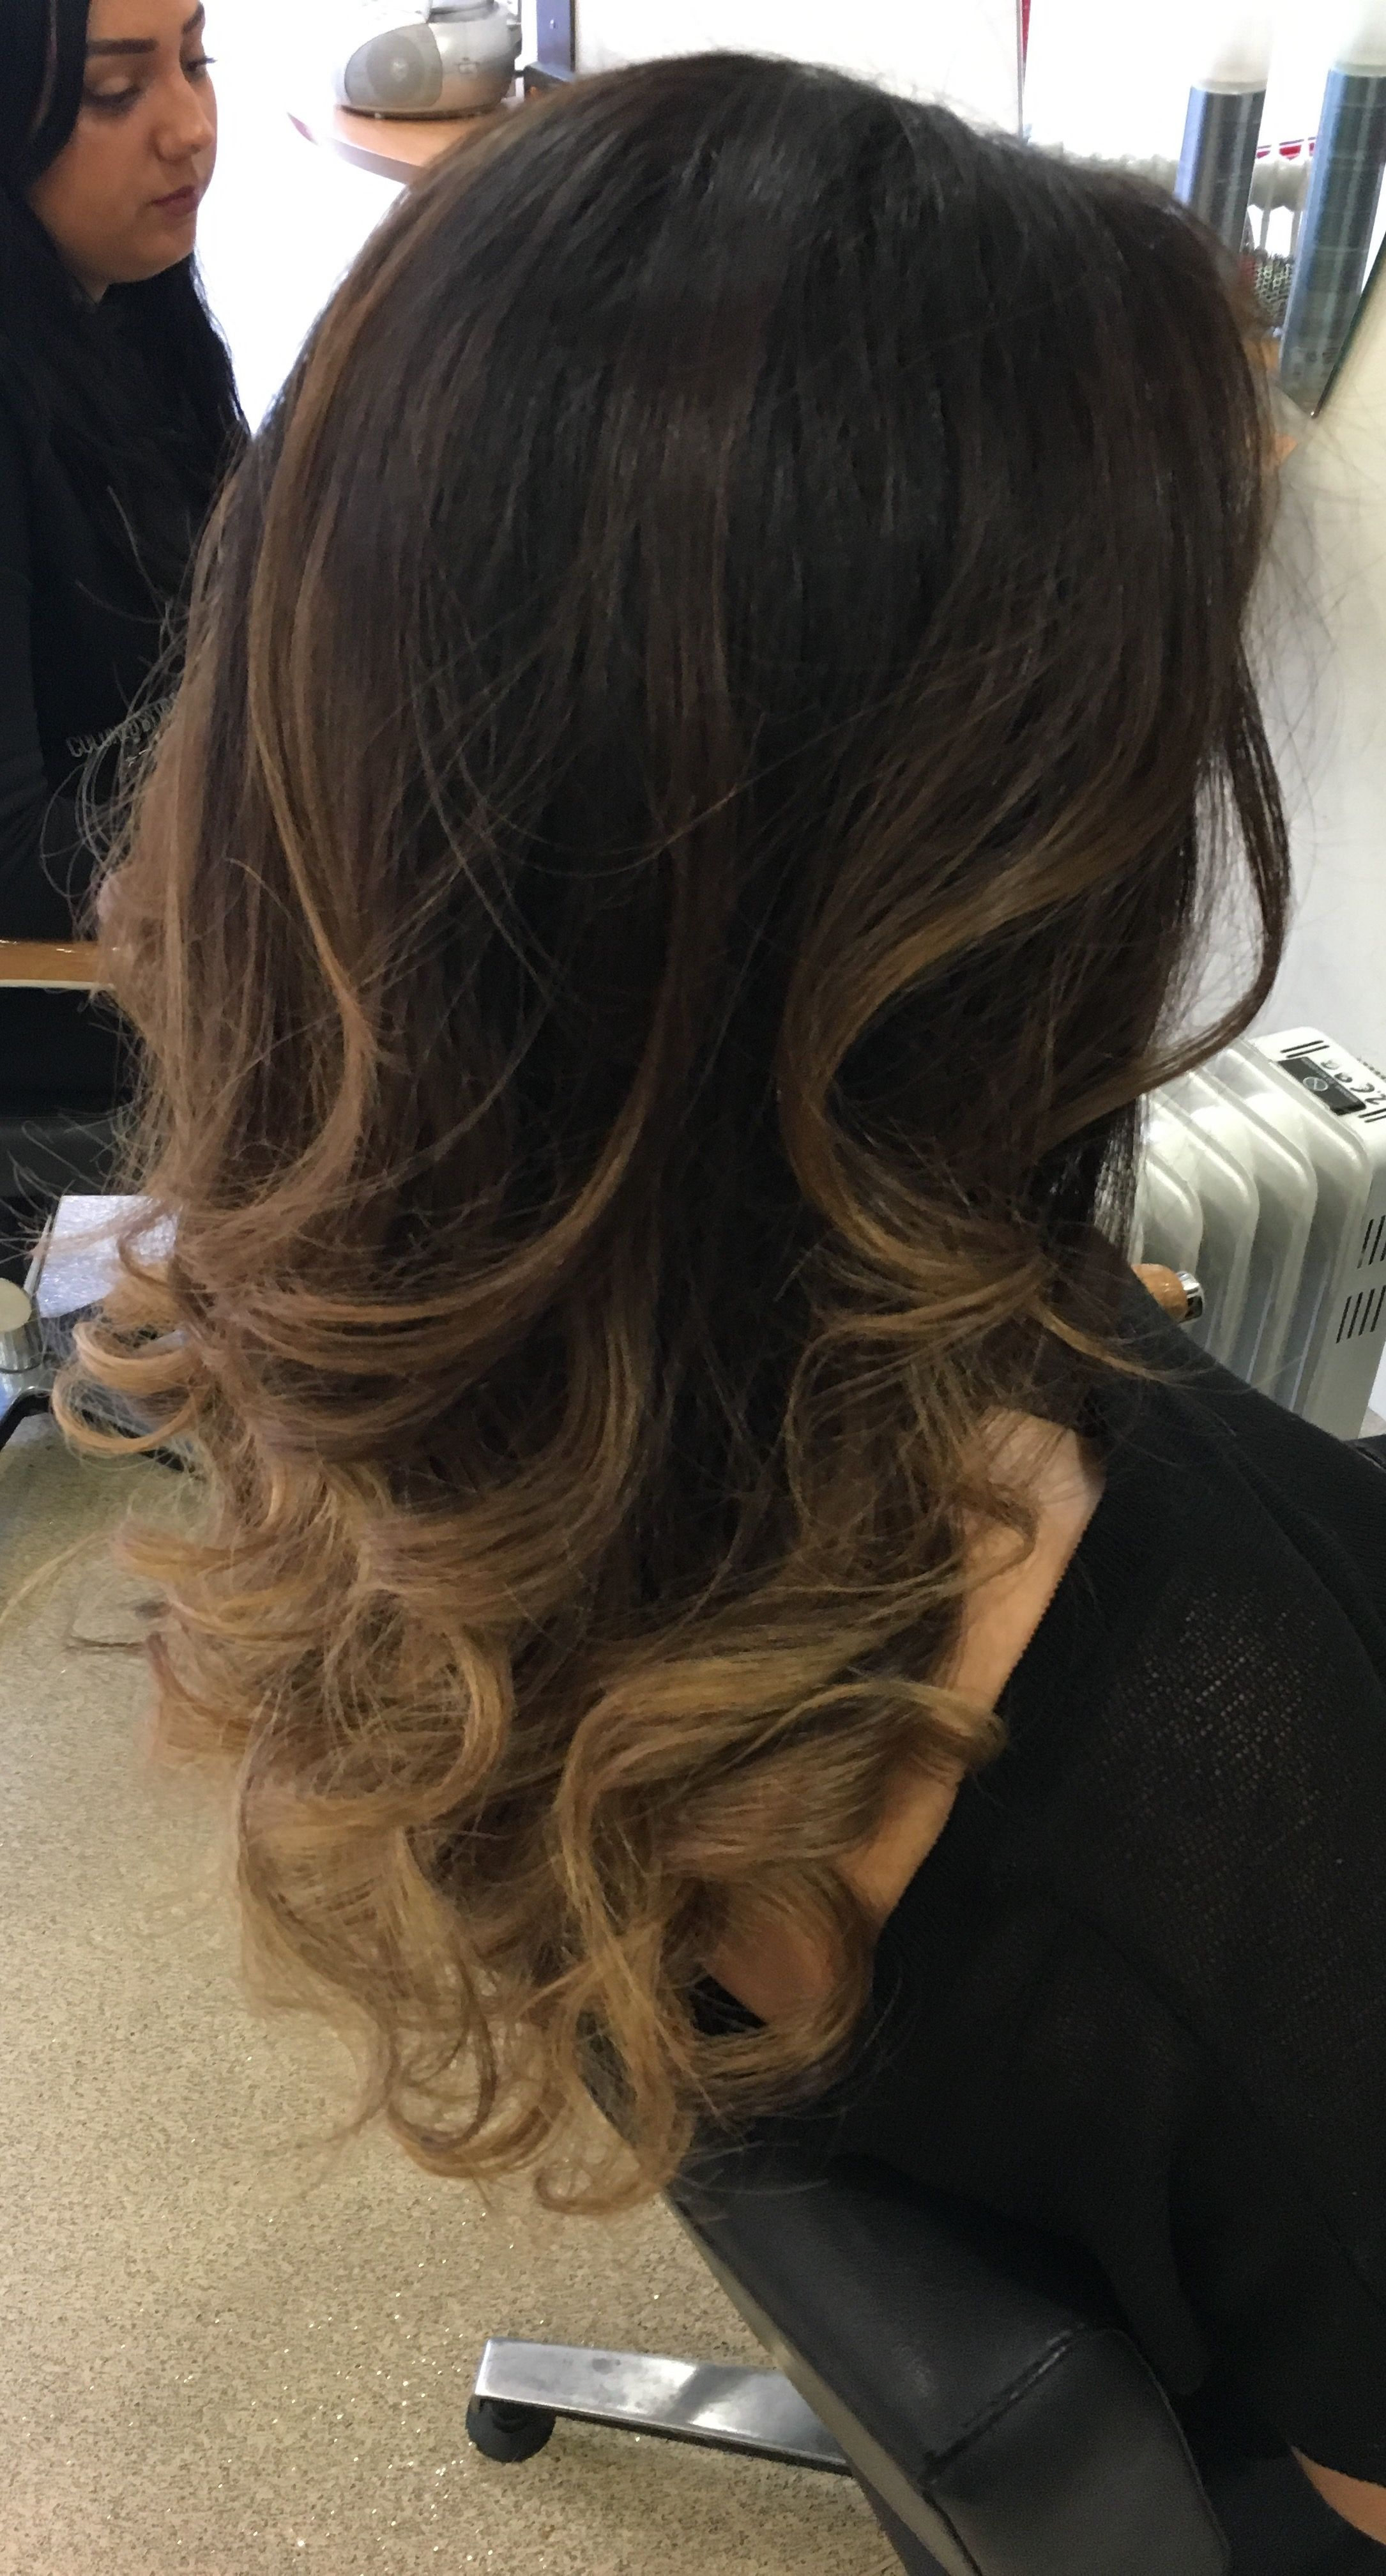 curly blowdry | hairstyles | curly blowdry long hair, curly